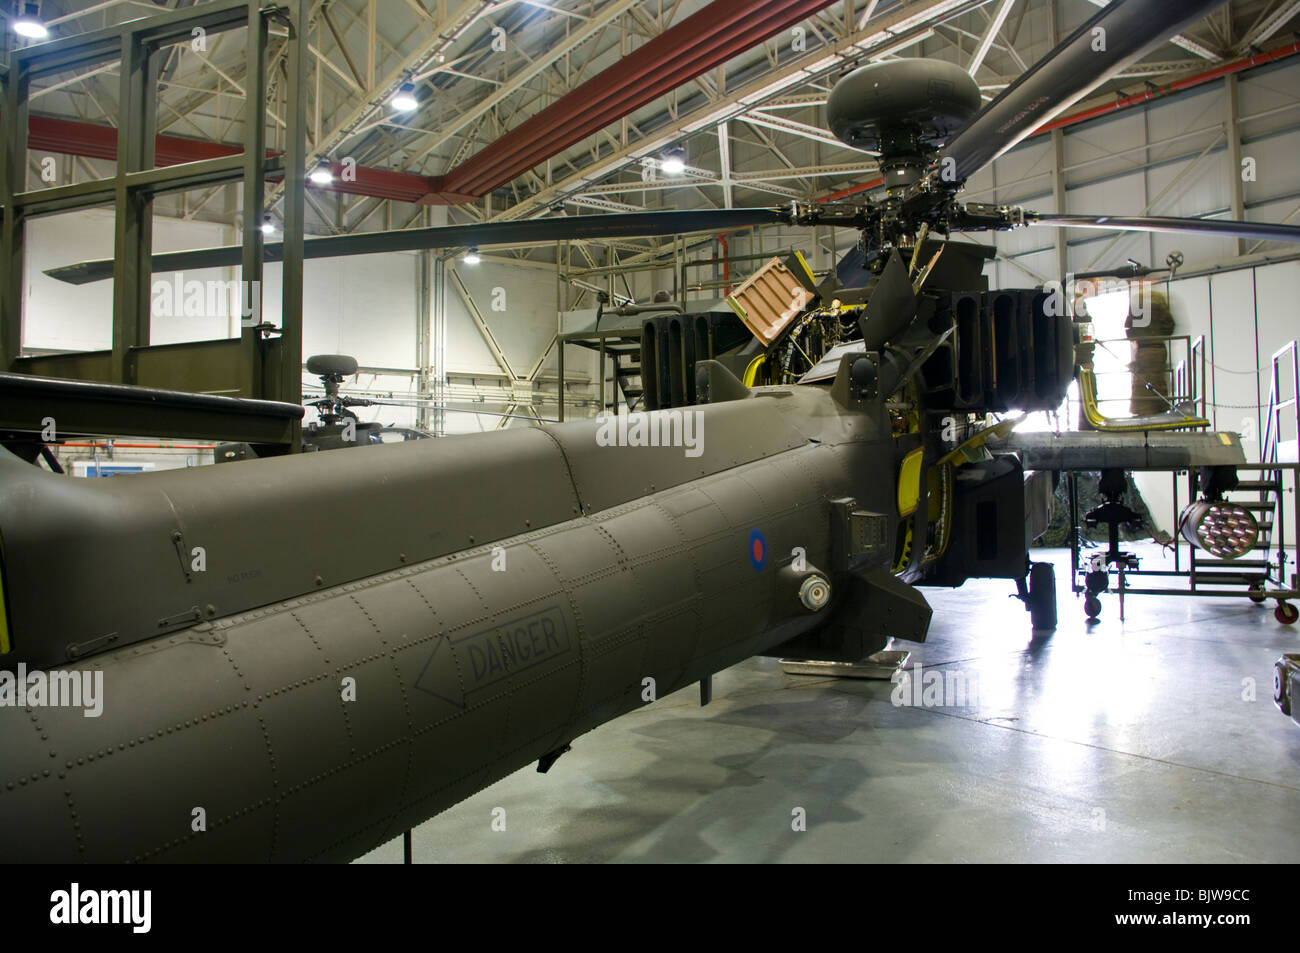 A British Army Westland Attack Helicopters WAH-64 MK1 Apache Longbow In A Maintenance Hanger Wattisham Airfield - Stock Image